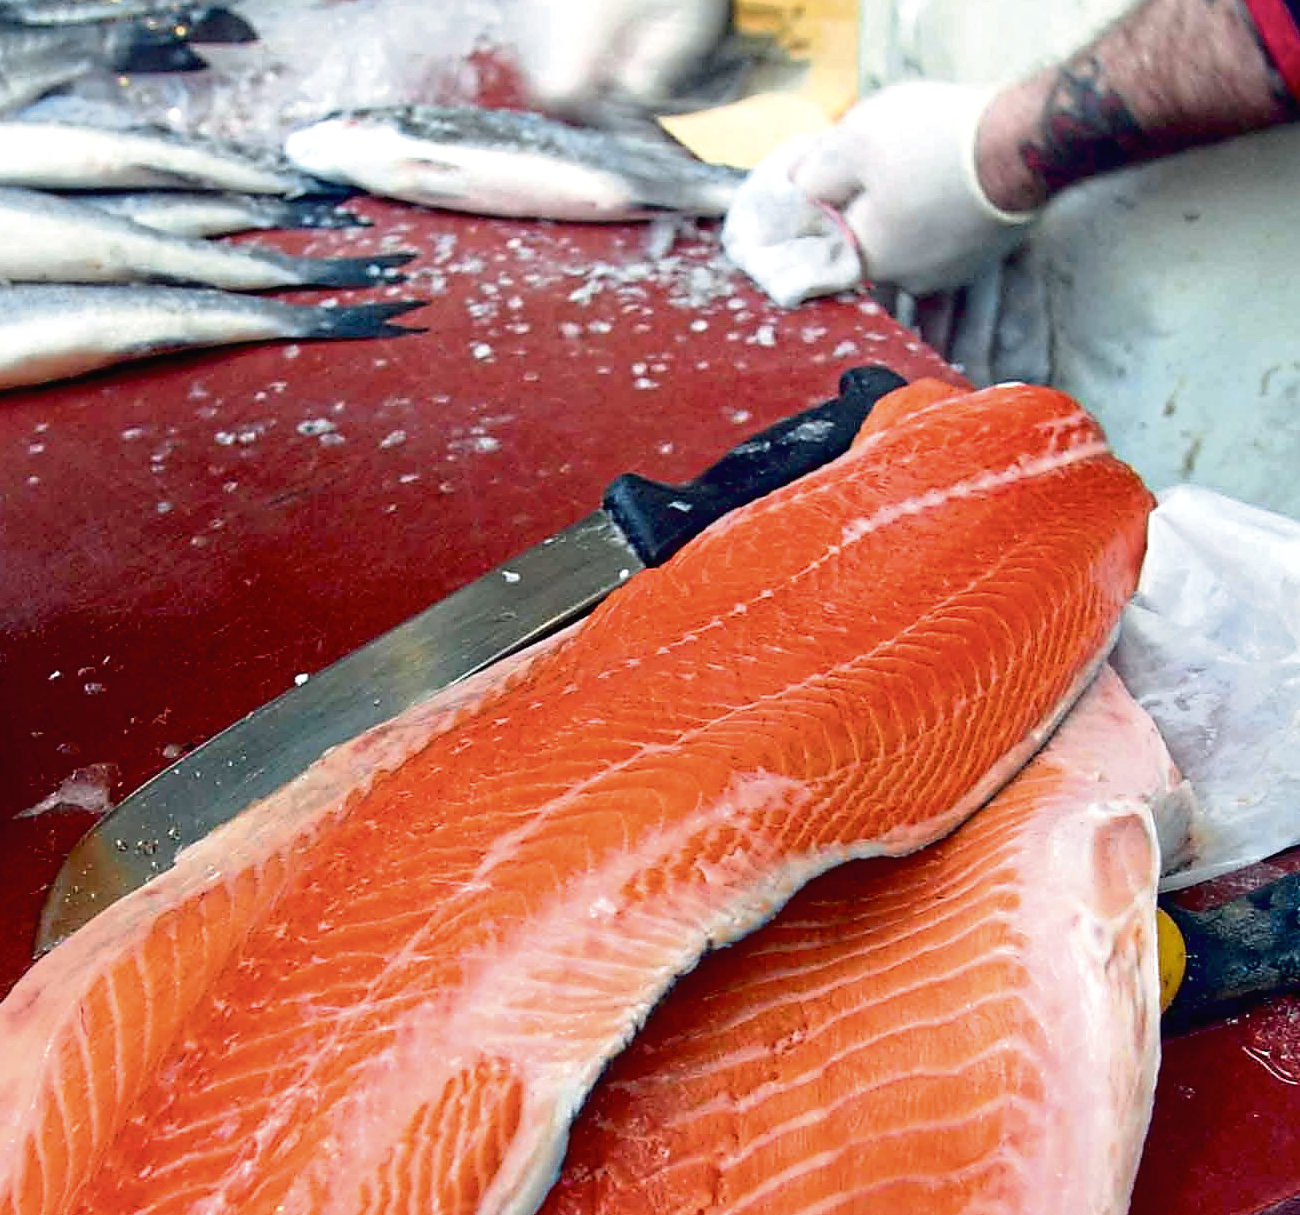 Salmon fillets on sale at a fish market.